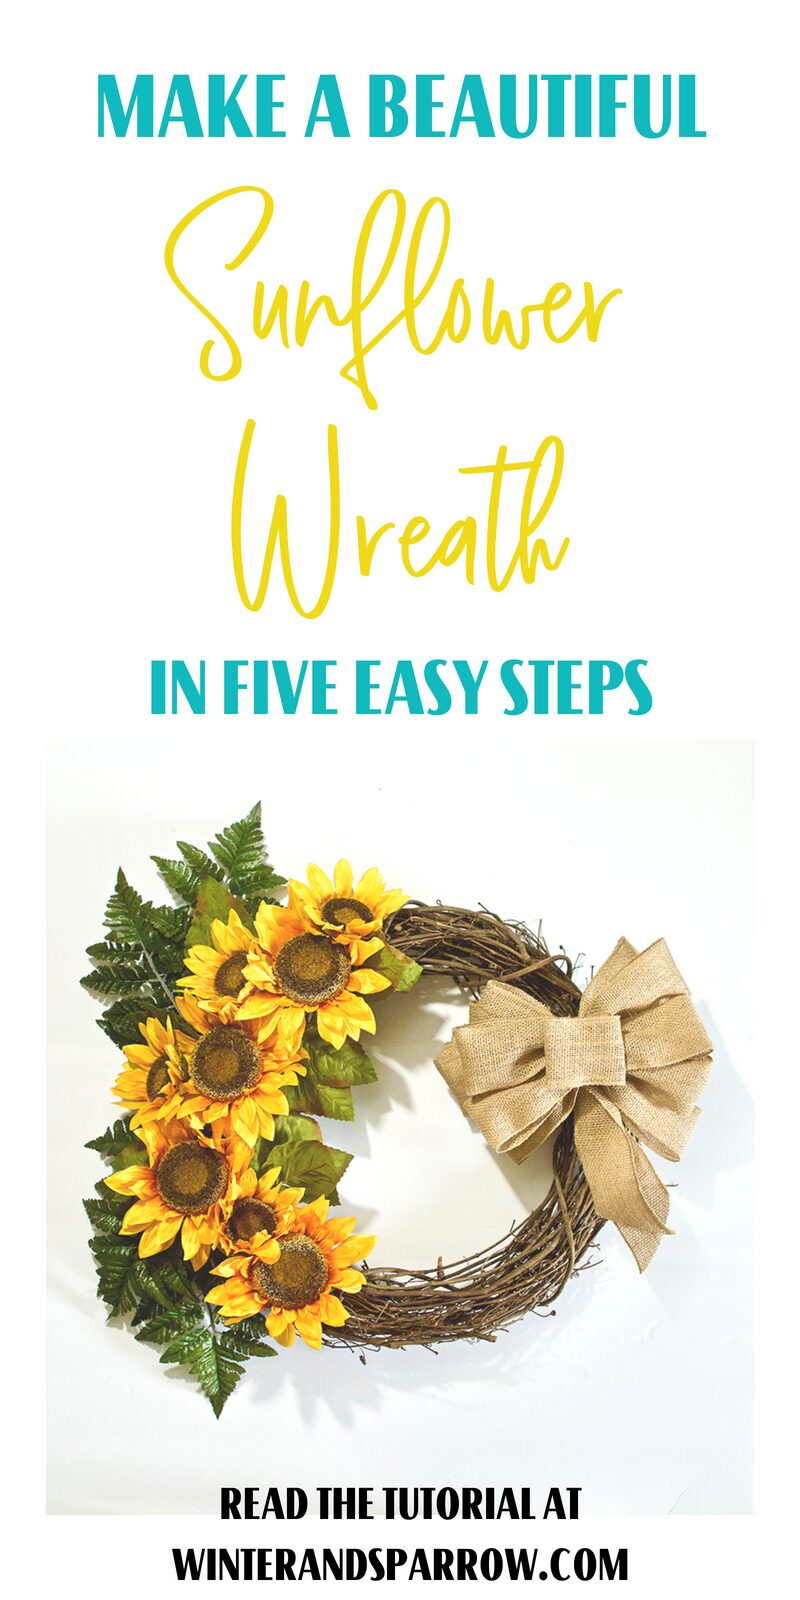 DIY:  Make A Sunflower Wreath In 5 Easy Steps (Bonus Video Tutorial)